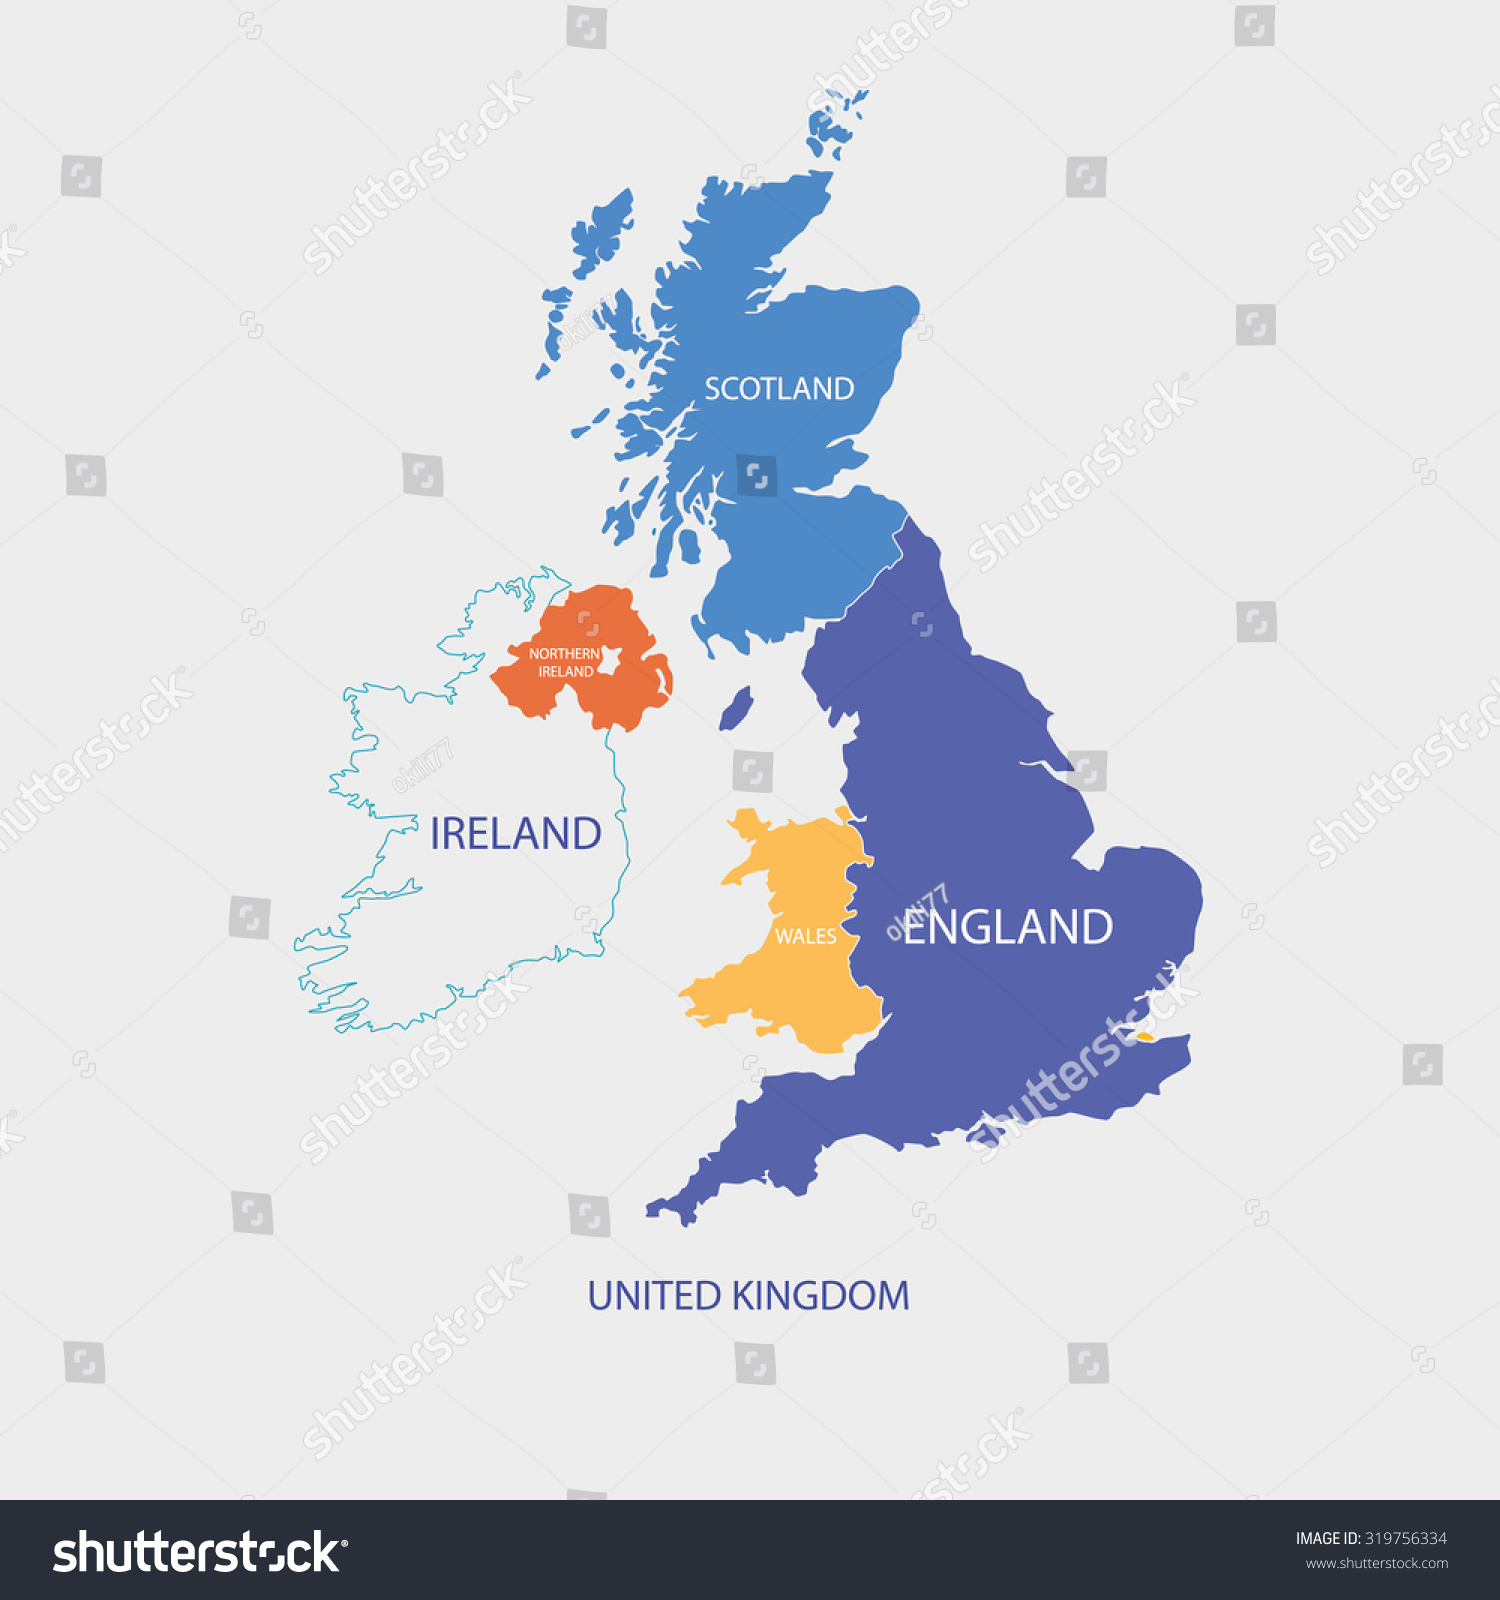 United kingdom map uk map borders vector de stock319756334 shutterstock united kingdom map uk map with borders in different color gumiabroncs Image collections